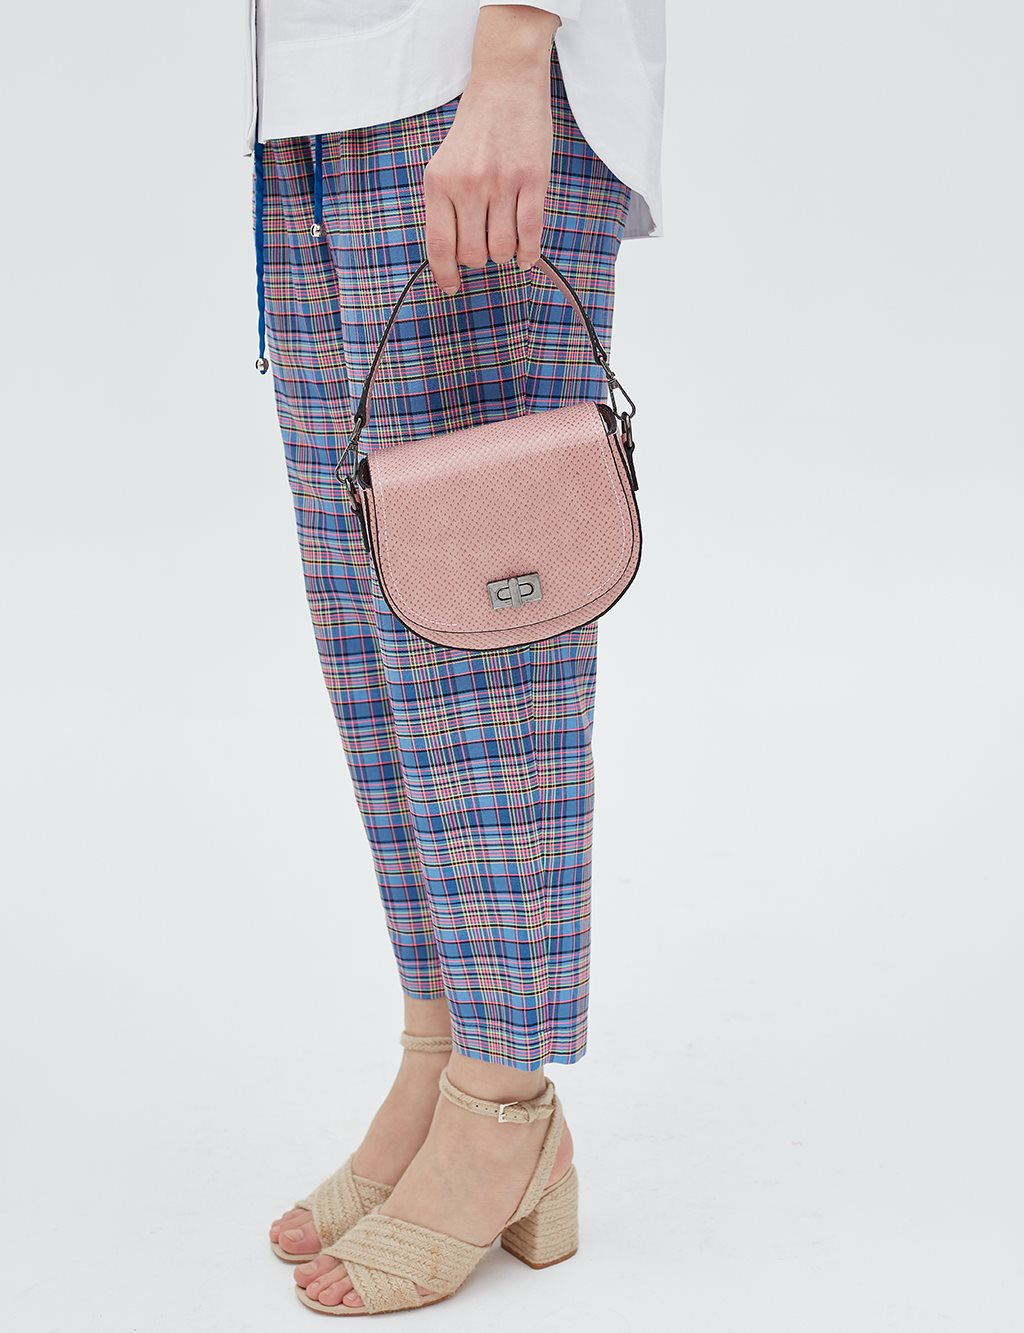 Chequered Carrot Pants B20 19154 Blue